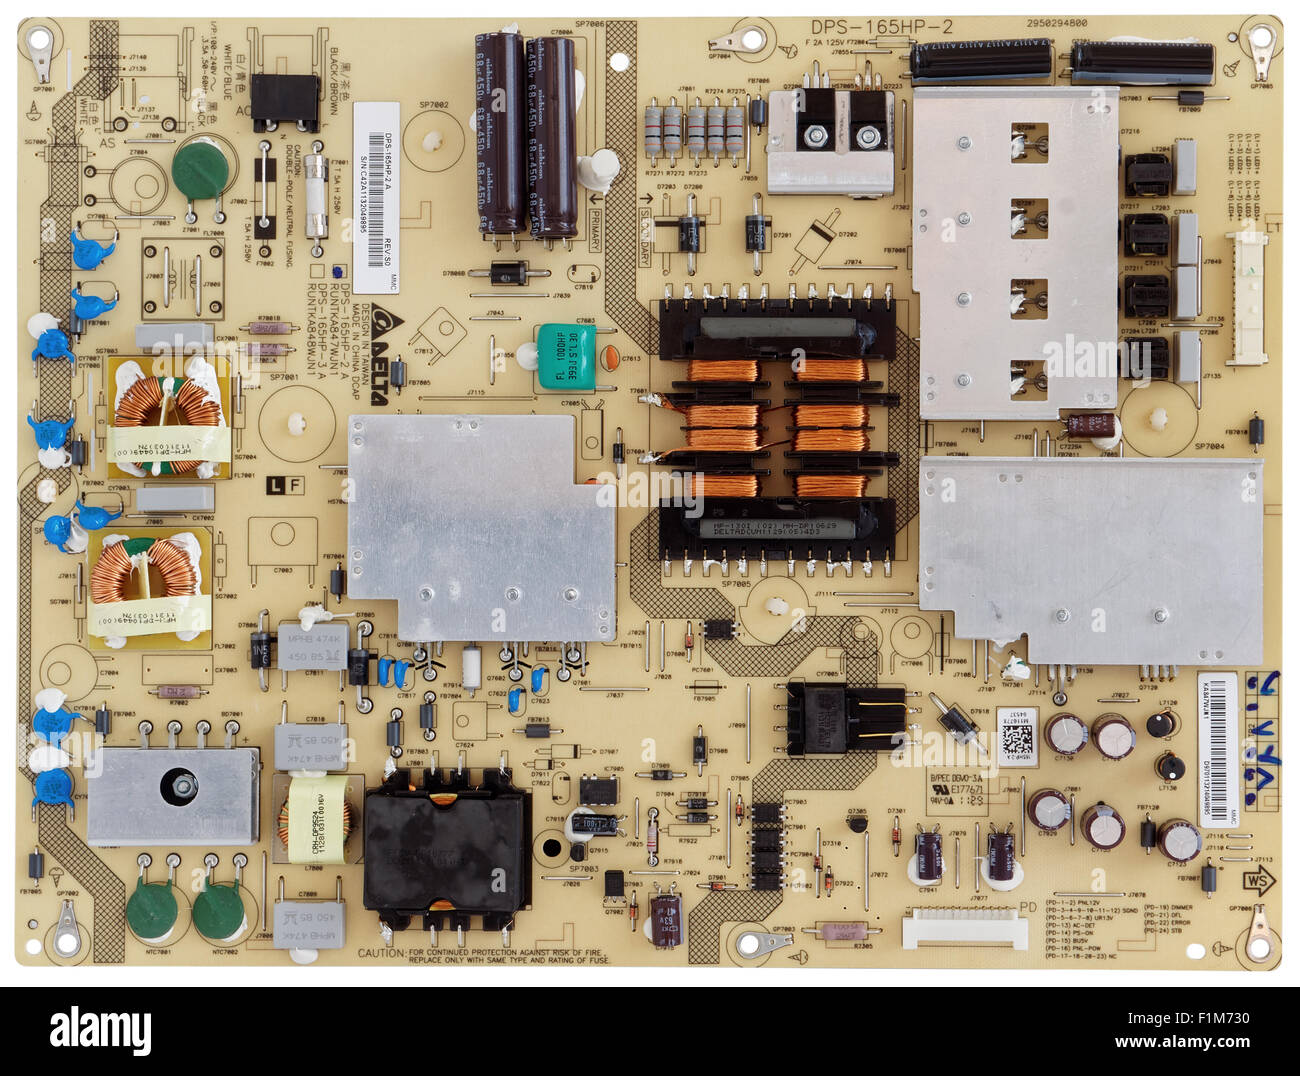 Modern Printed Circuit Board Of The Powerful Power Supply For Sharp On A Good Quality Pcb Or Common Brand Tvs And Display